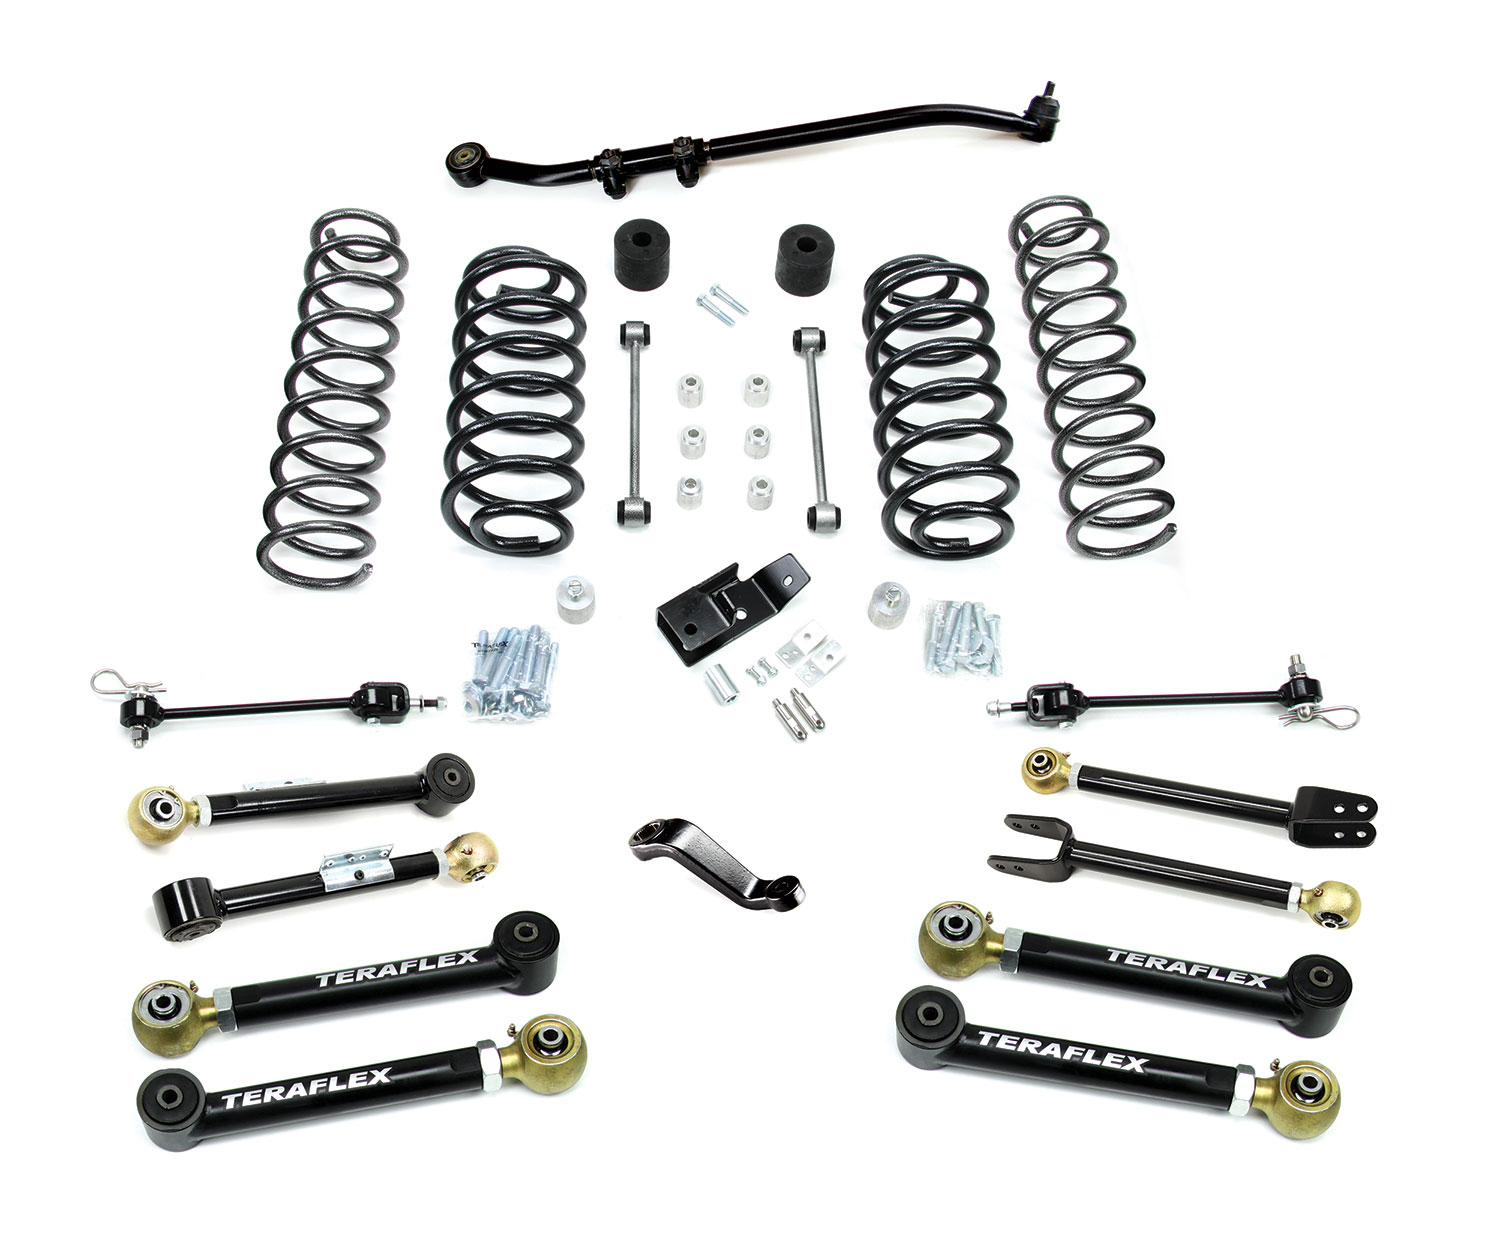 Teraflex 4in Lift Kit W/8 Flexarms & Trackbar - TJ/LJ